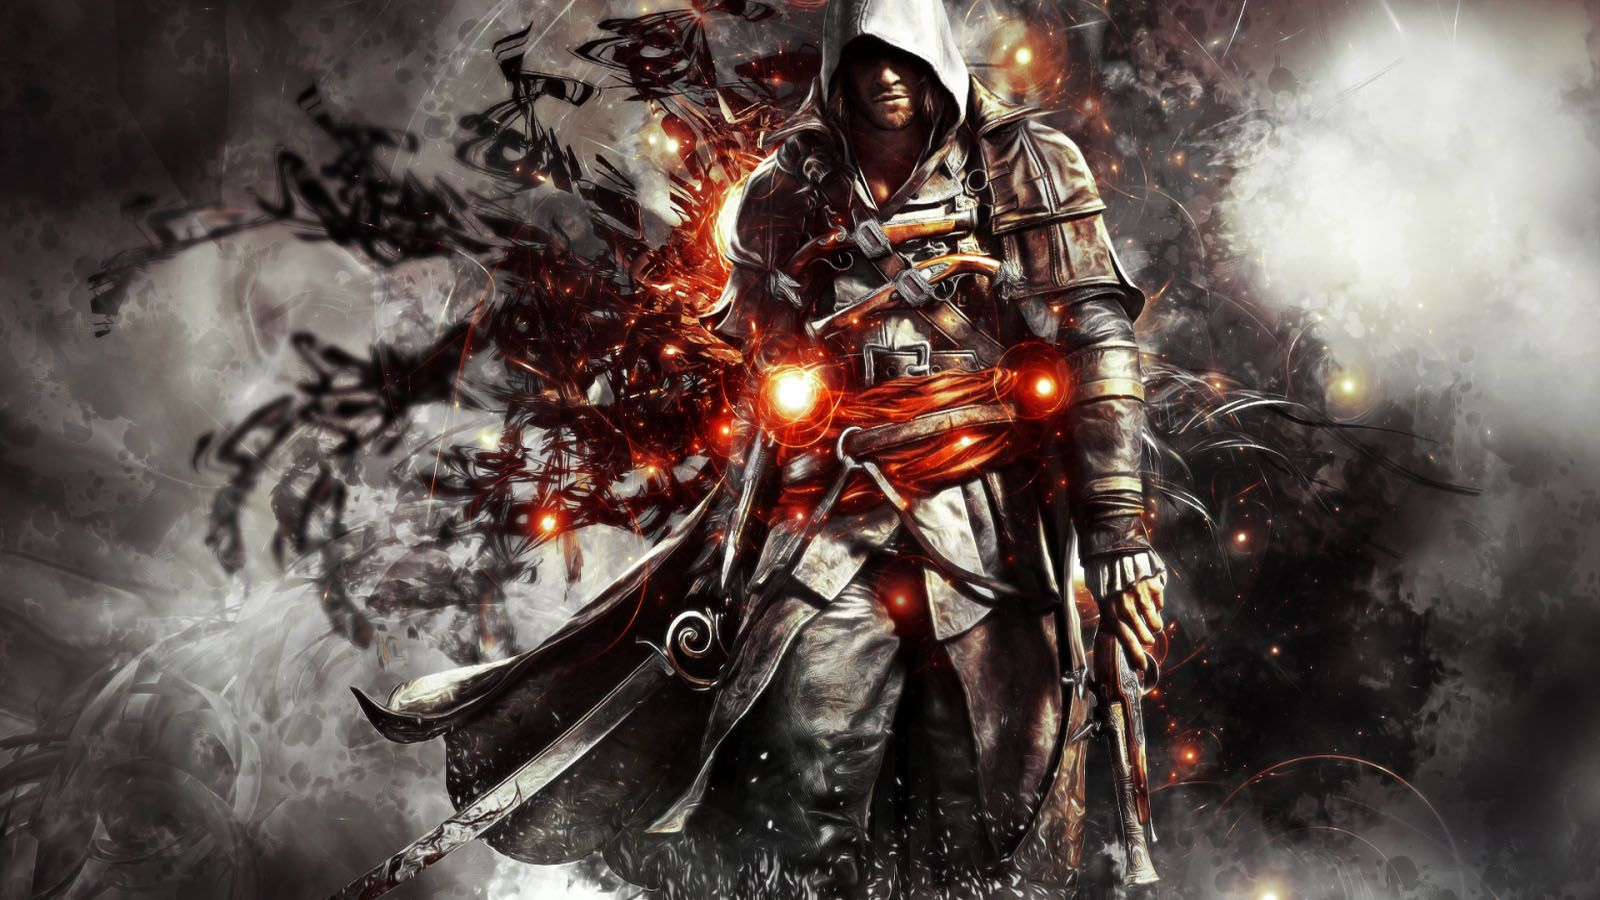 Assassin's Creed Wallpapers